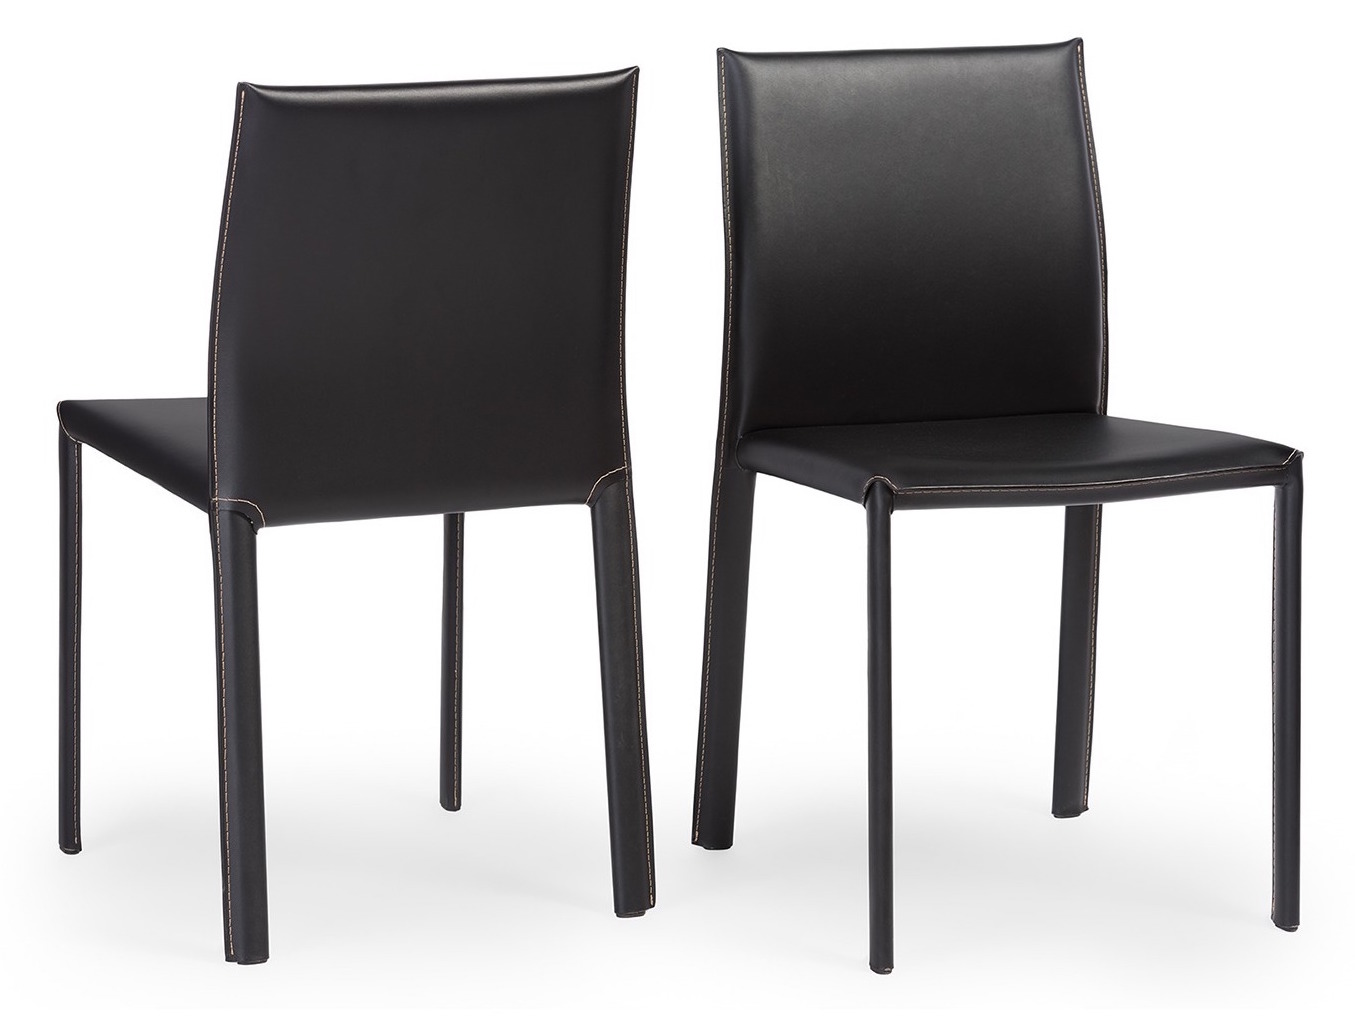 burridge-chair-in-black-leather-finish.jpg